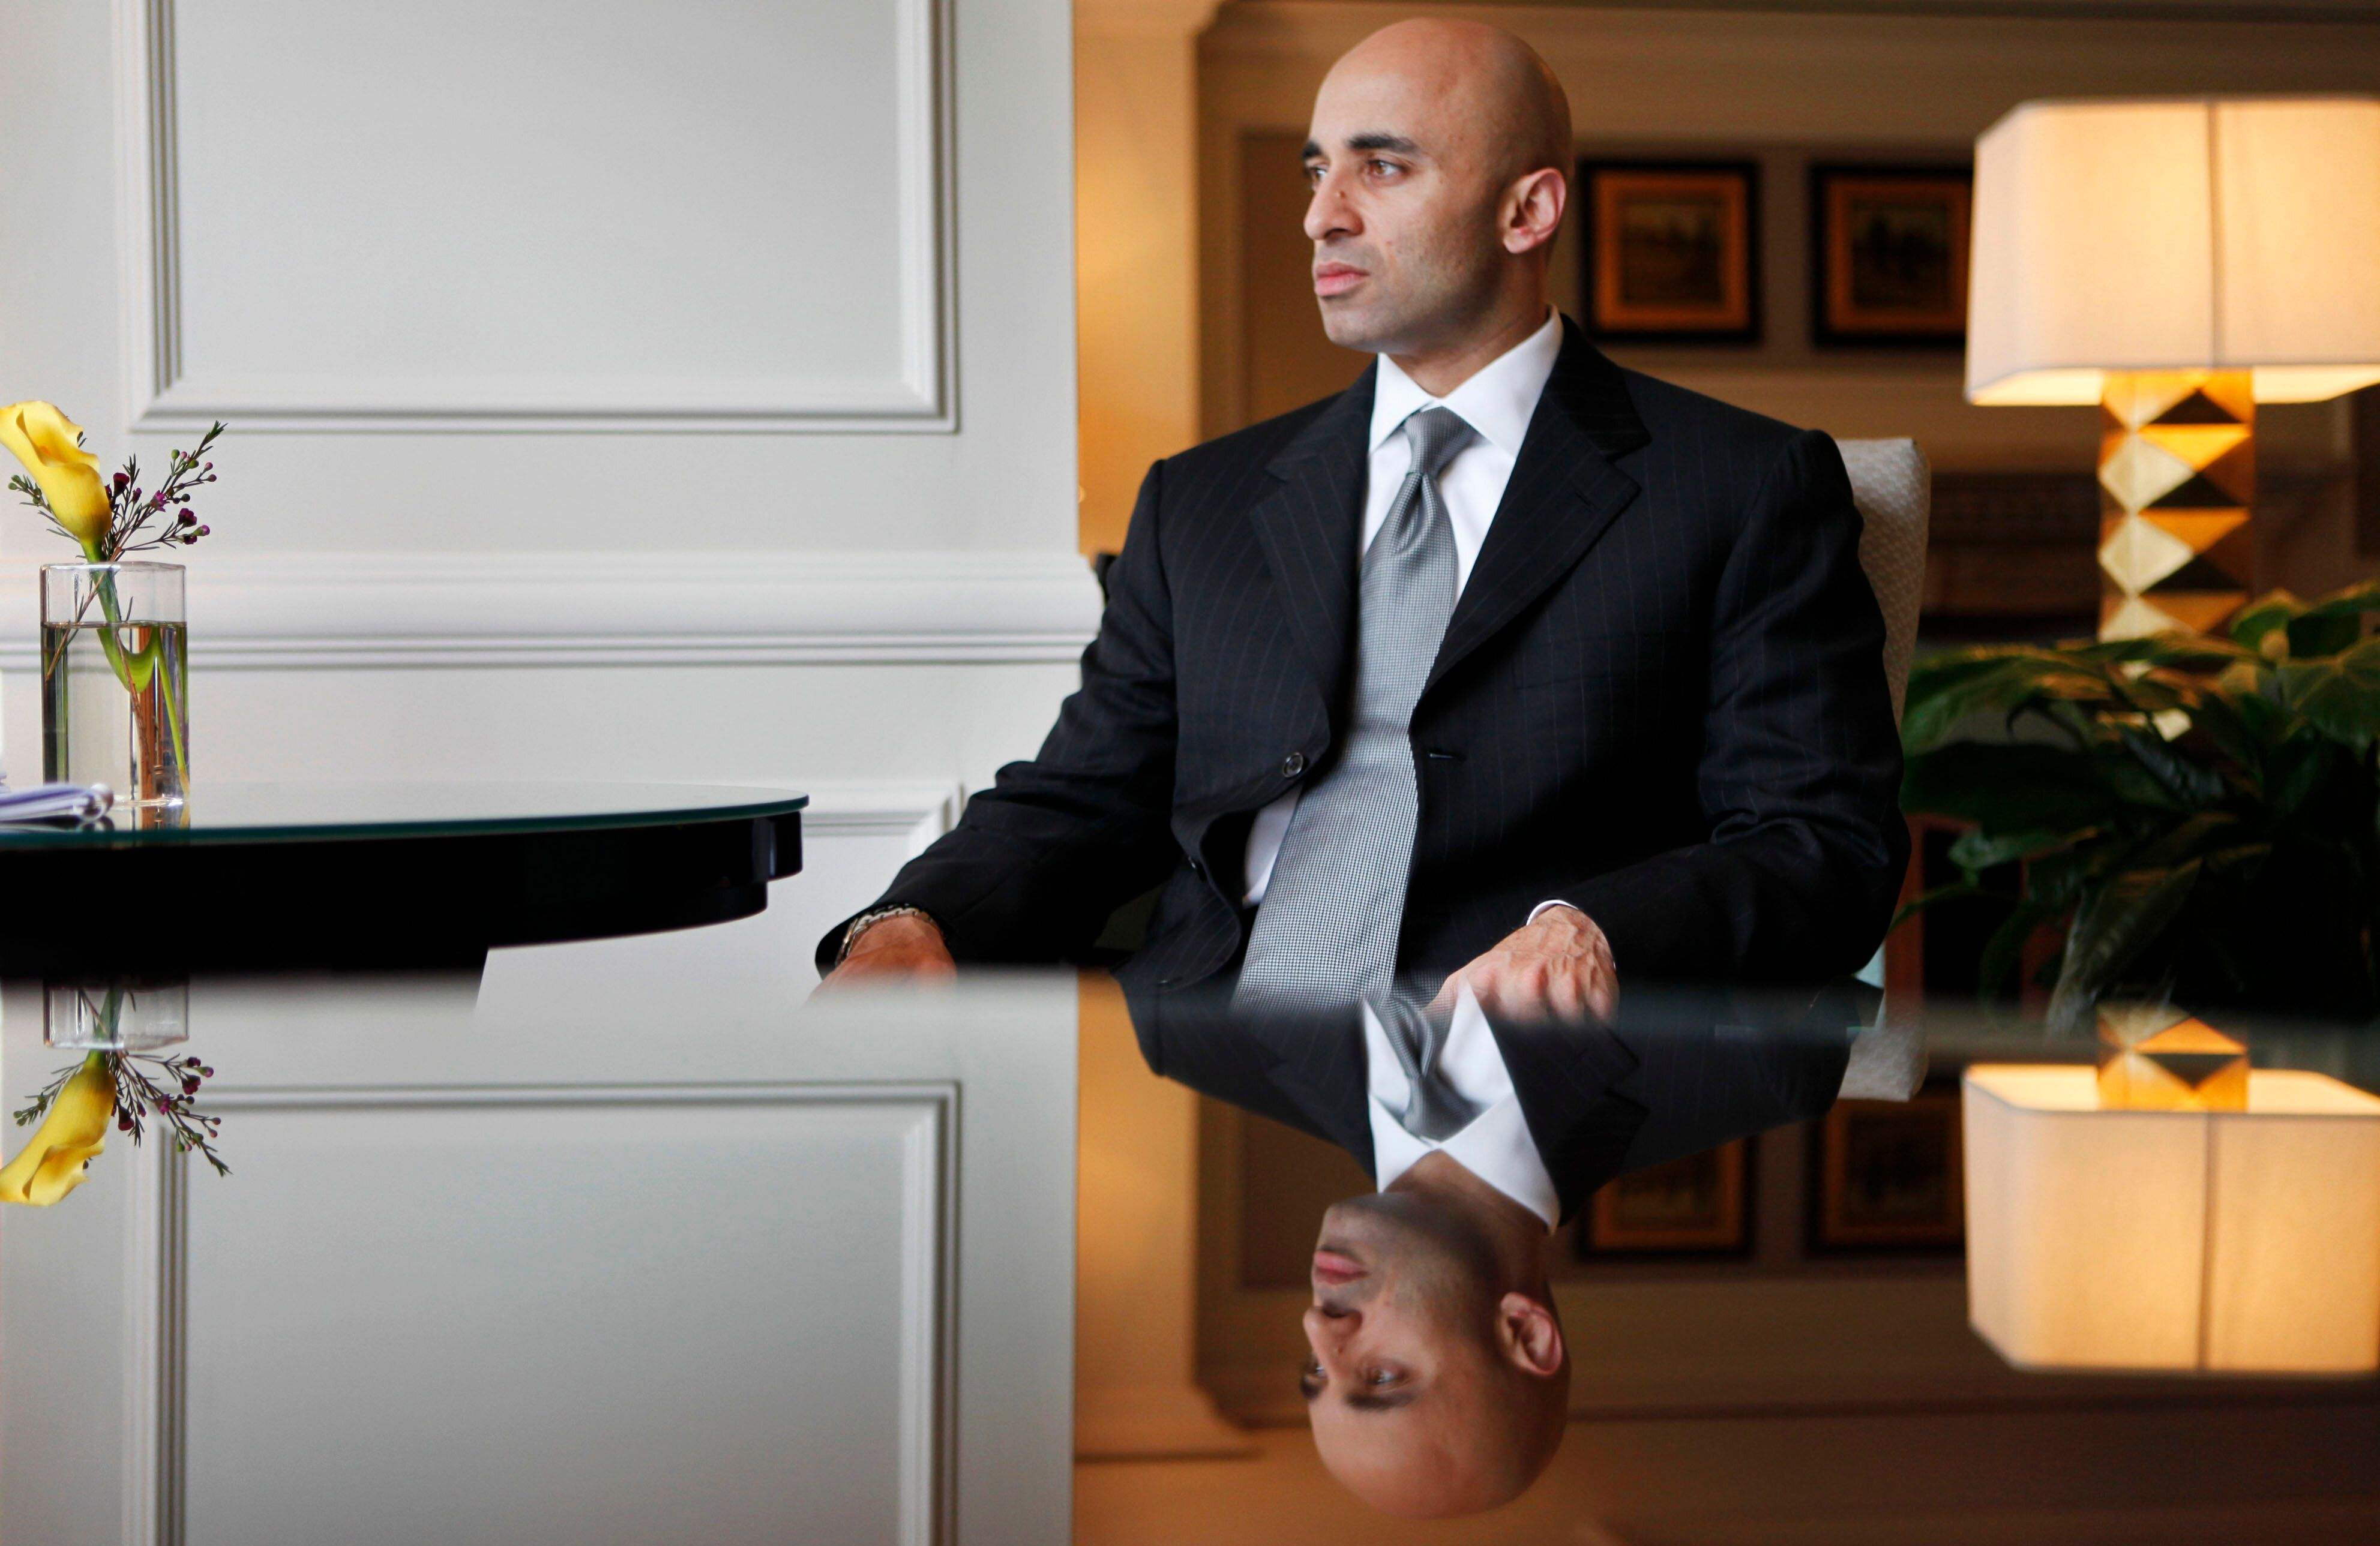 UAE Ambassador to the U.S. Yousef Al Otaiba, pictured in 2009, is expected to play on Americans' anxieties about Tehran